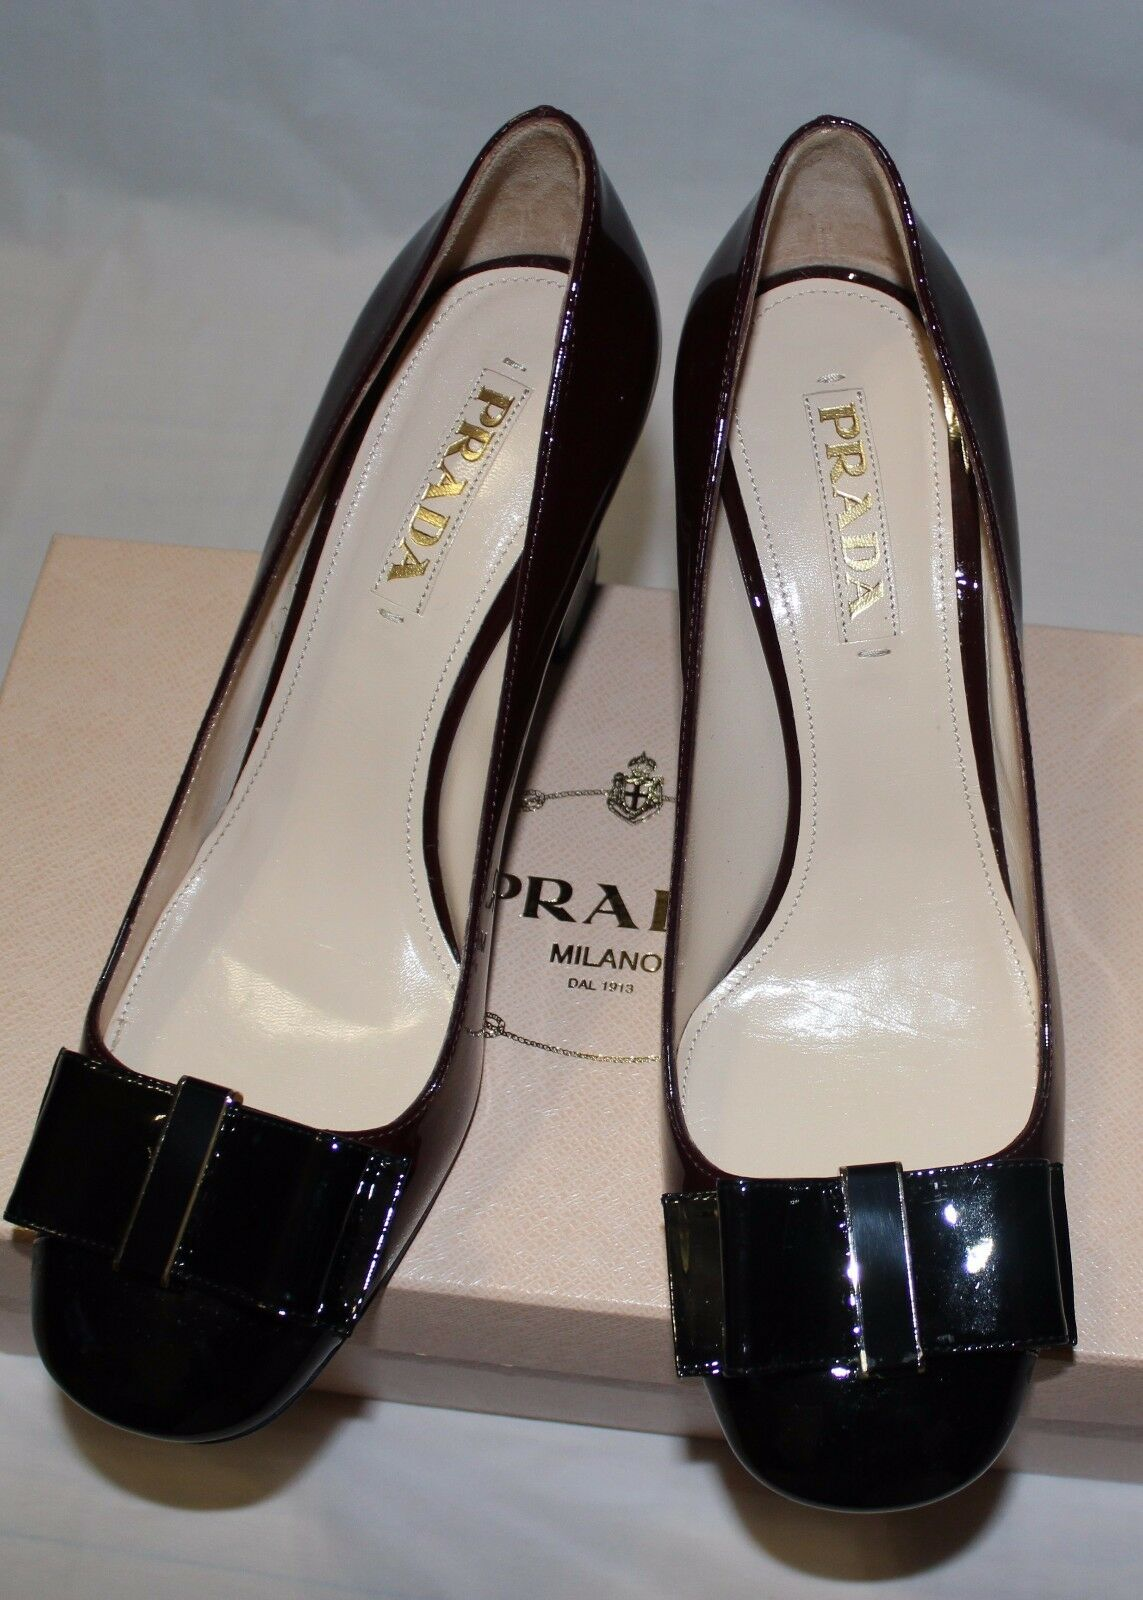 AUTHENTIC!  650 PRADA VERNICE BI-COLOR  AMARENA PUMP 39.5/ 9.5 US